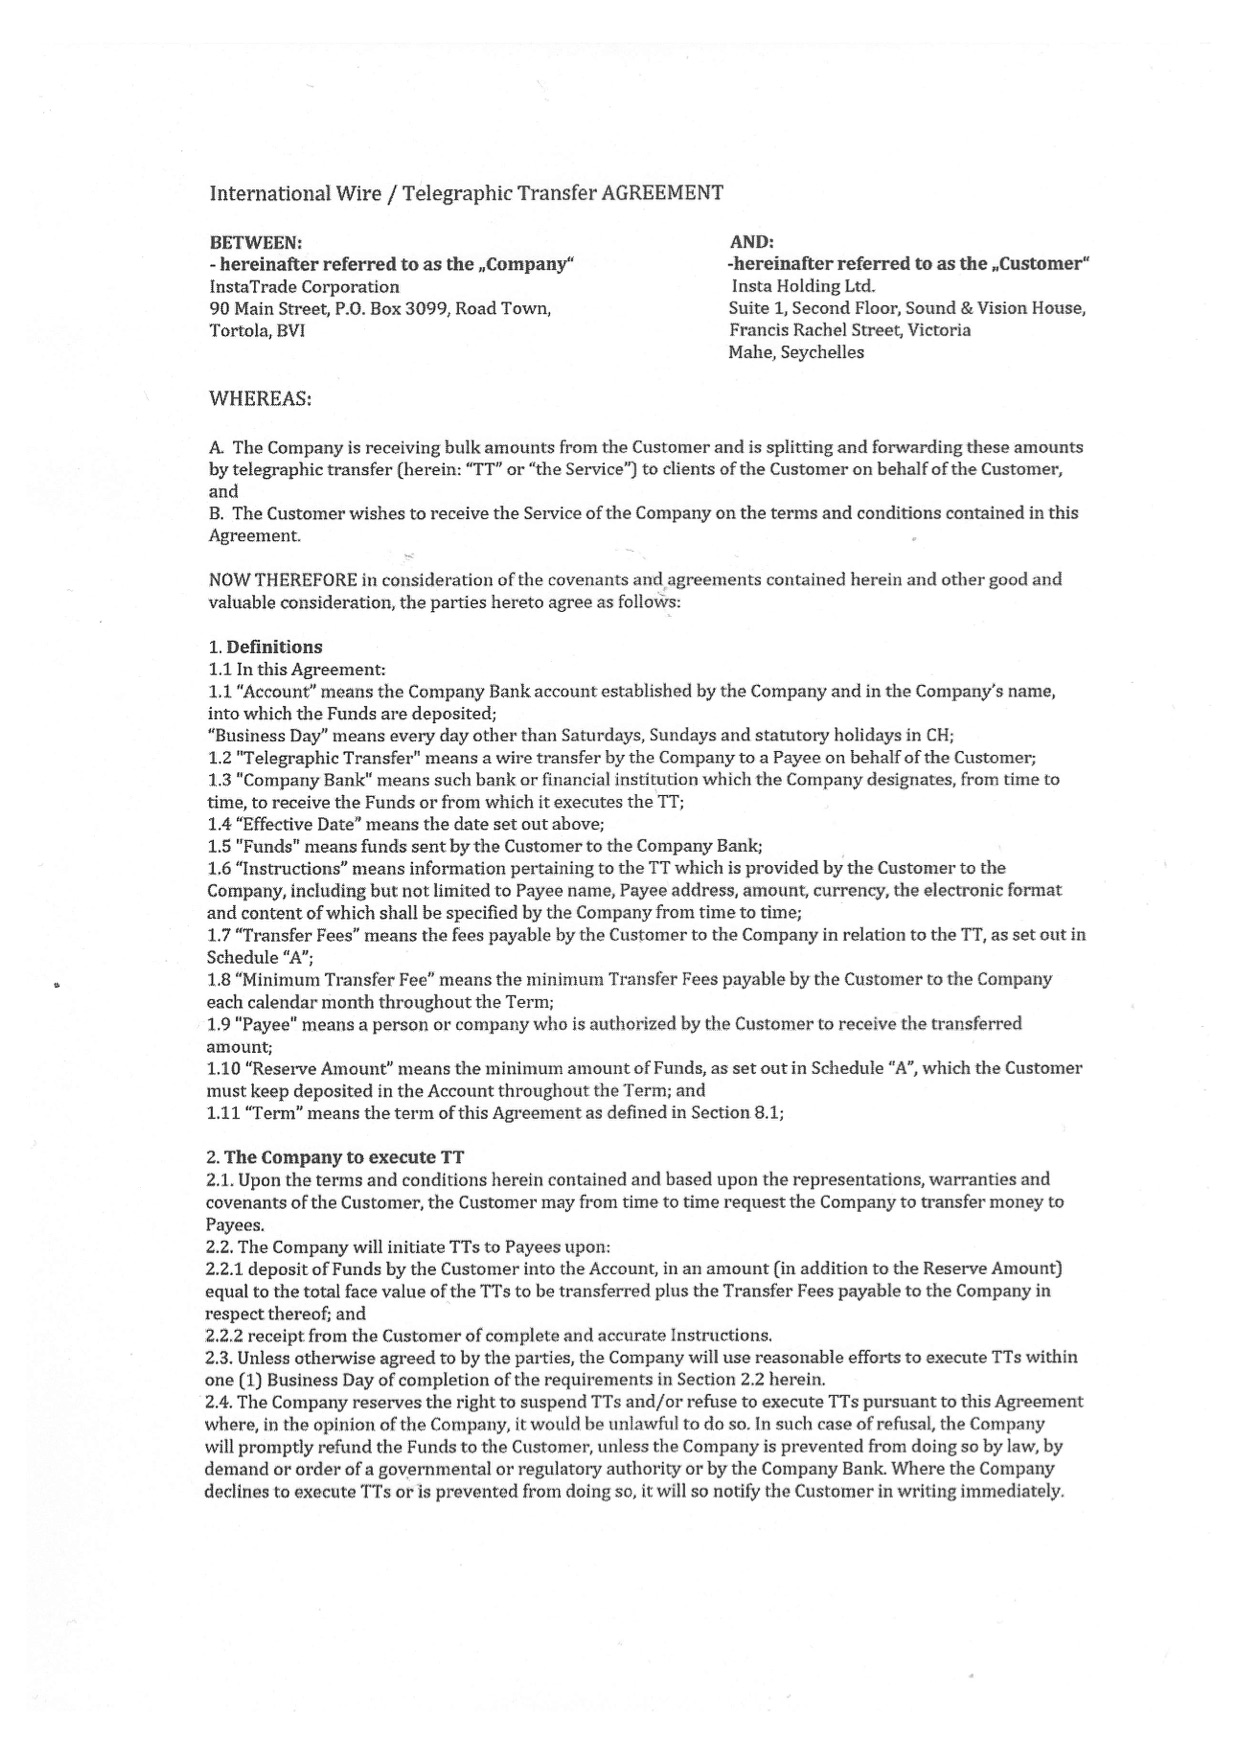 IT IH Contract page1.jpg